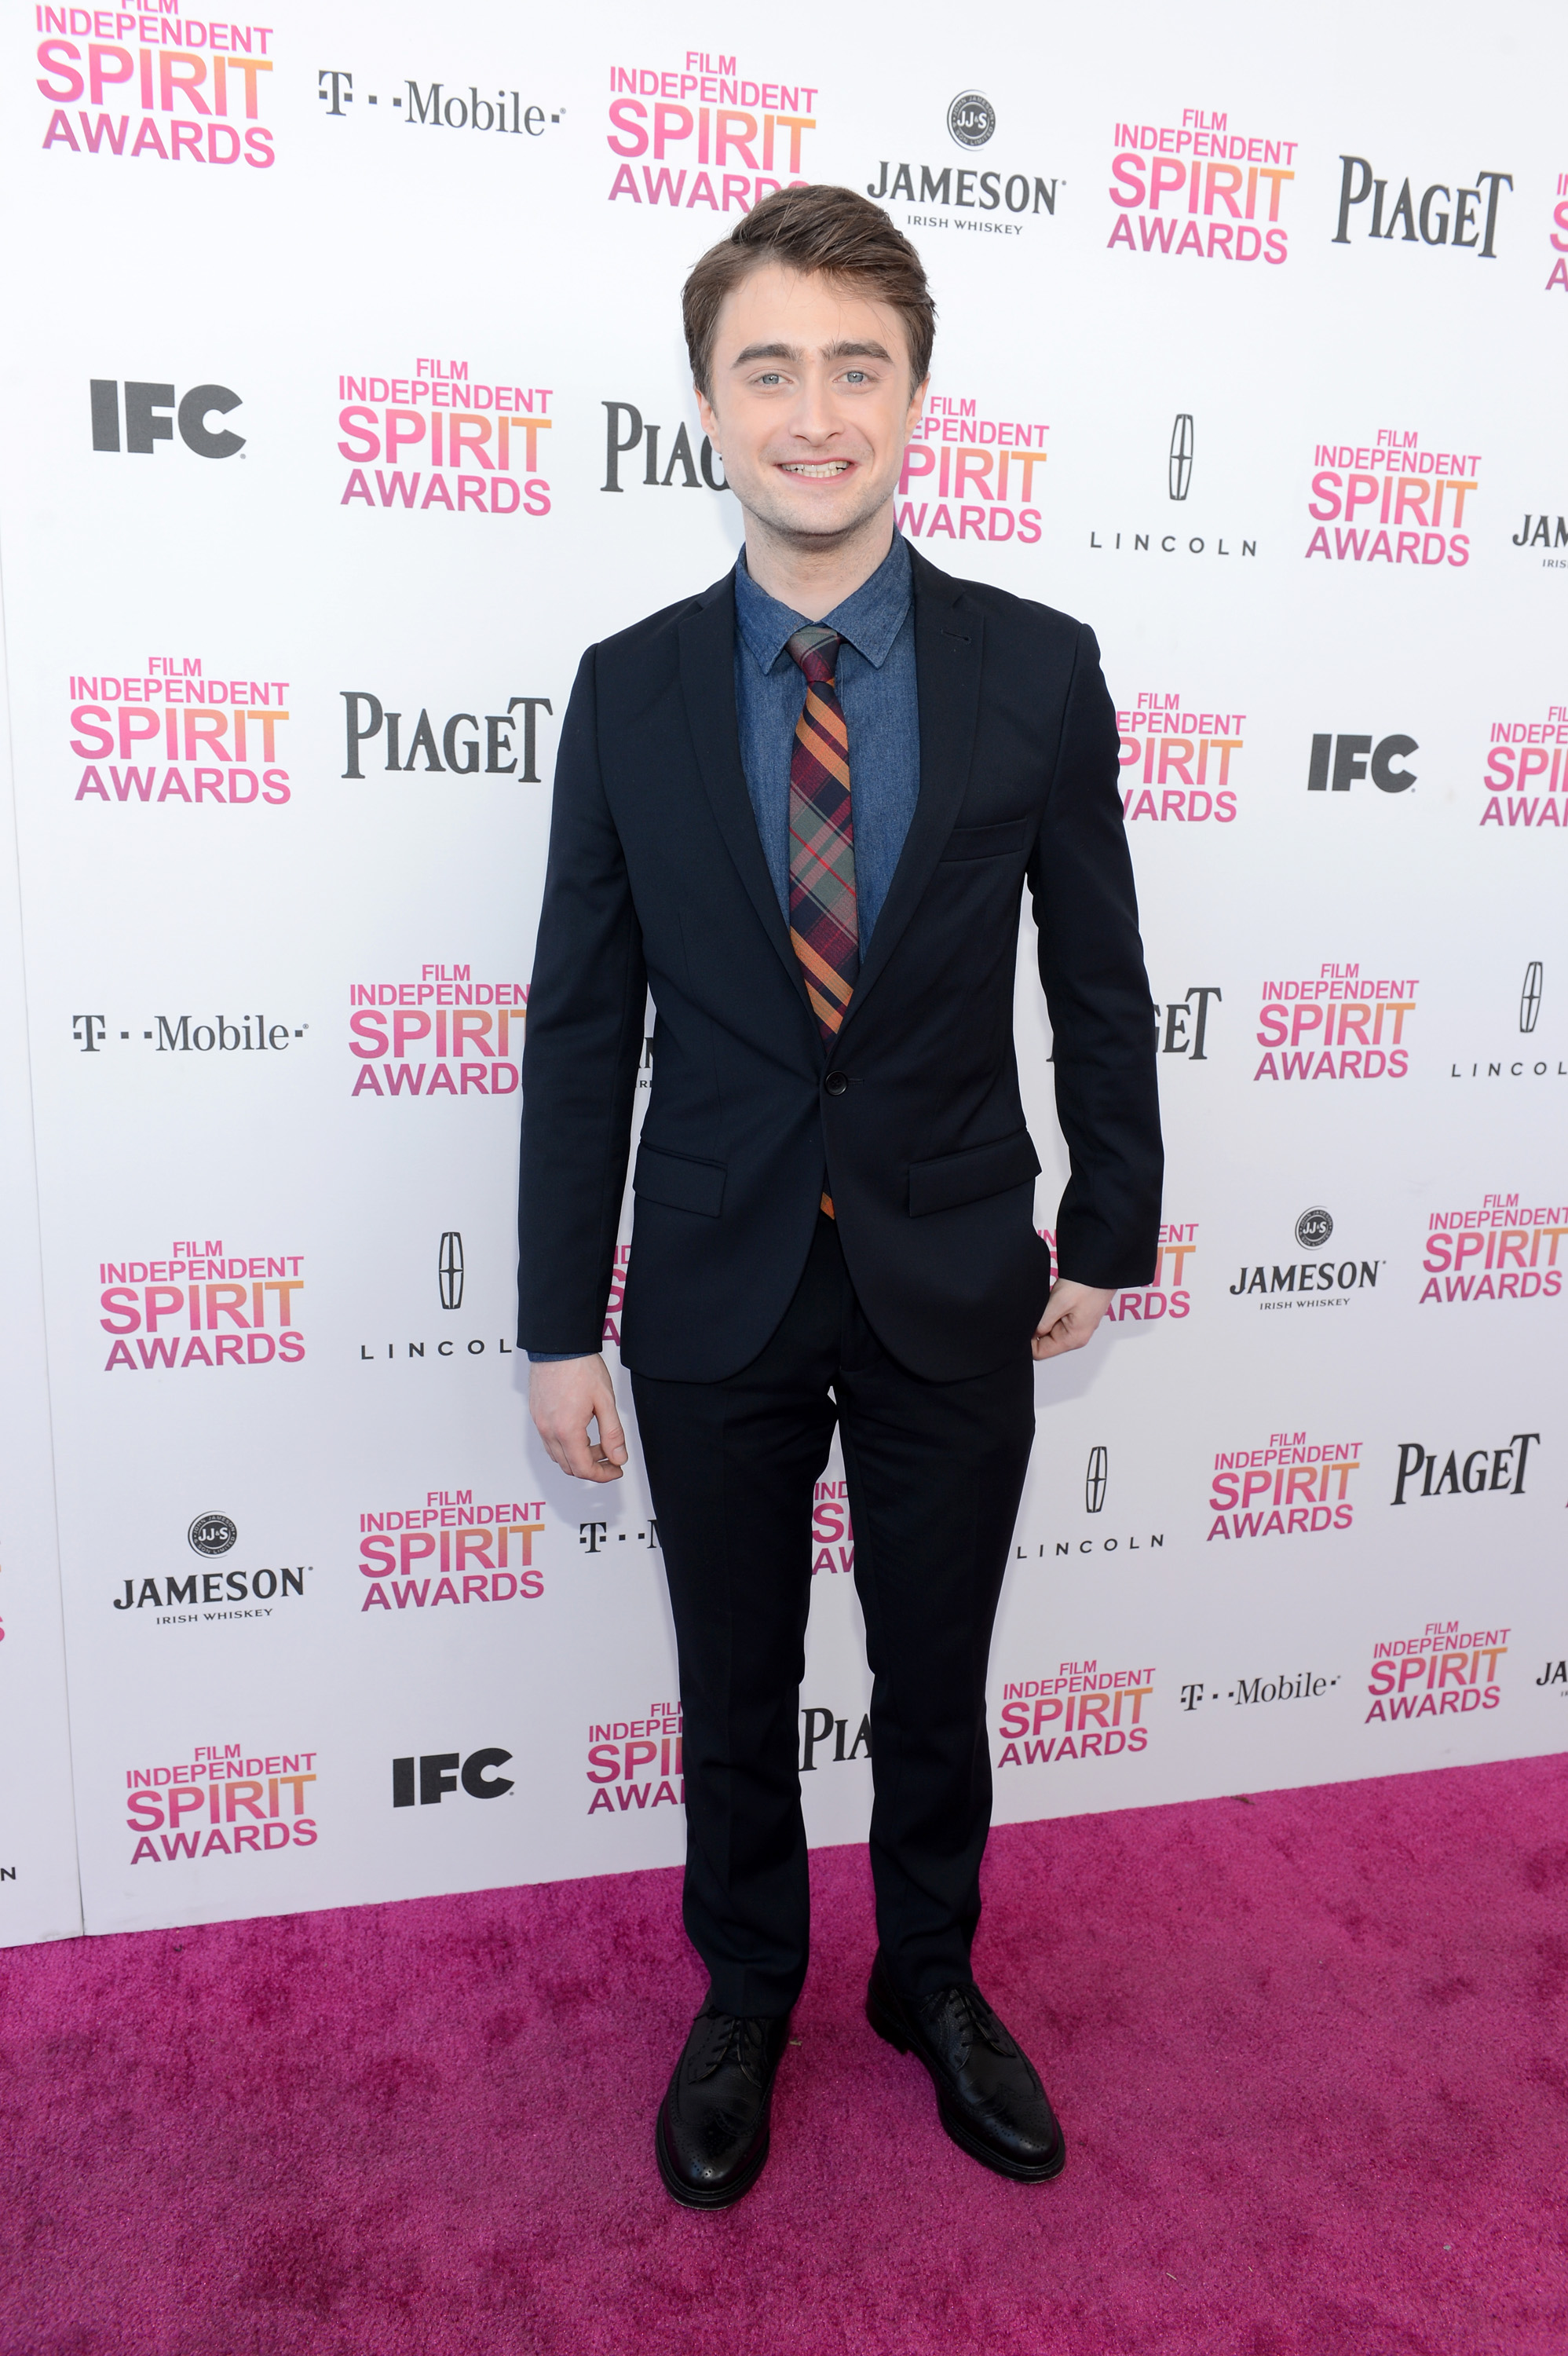 Daniel Radcliffe on the red carpet at the Spirit Awards 2013.